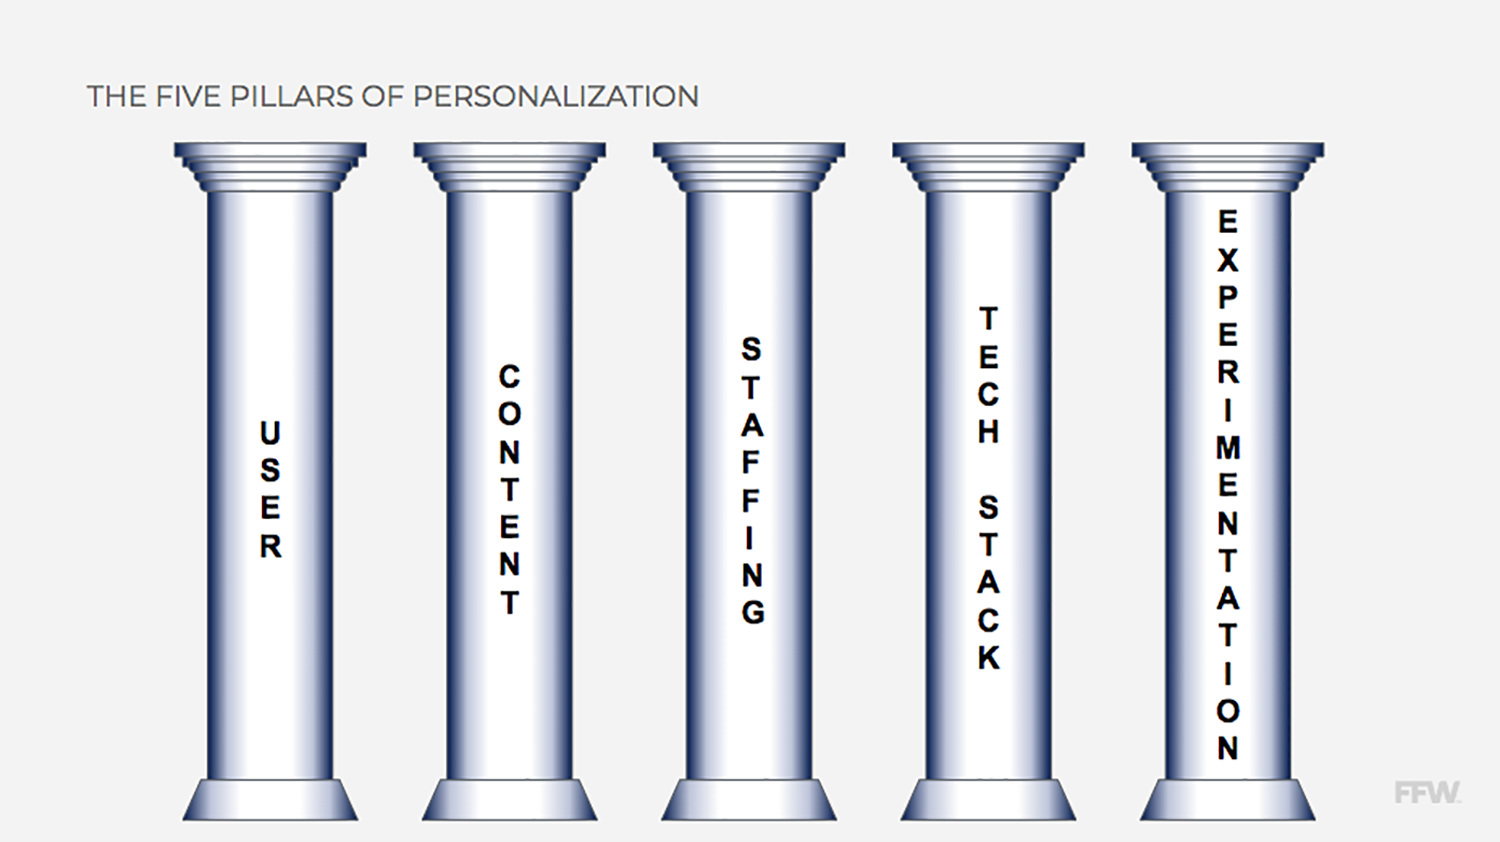 The Five Pillars of Personalization